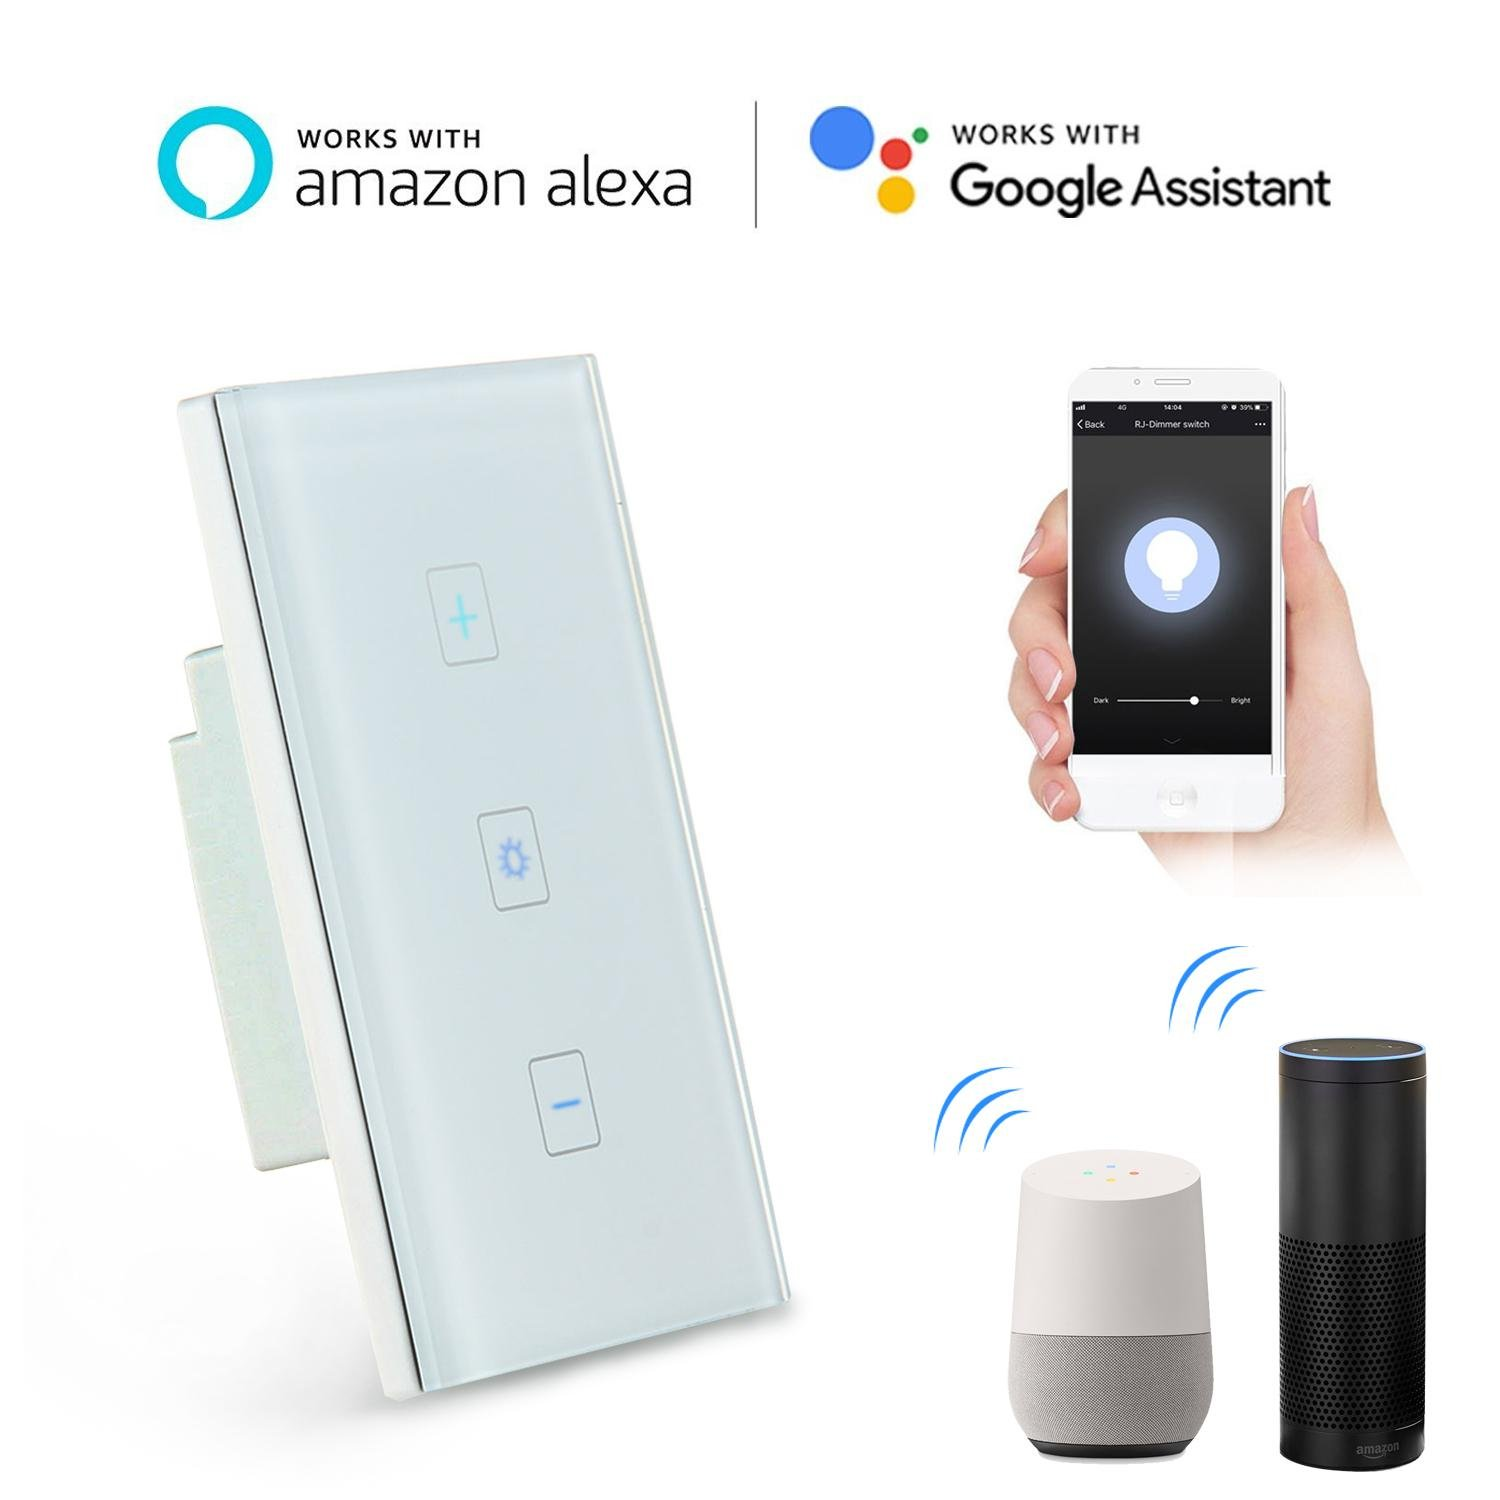 FOONEE Wifi Dimmer Switch, Home Decoration Smart Dimmer Switch with Alexa, Google Home Touch Switch Outlet Wifi Smart Lighting Control for Bedroom, Kitchen, Living Room(Neutral Wiring Required) by FOONEE (Image #1)